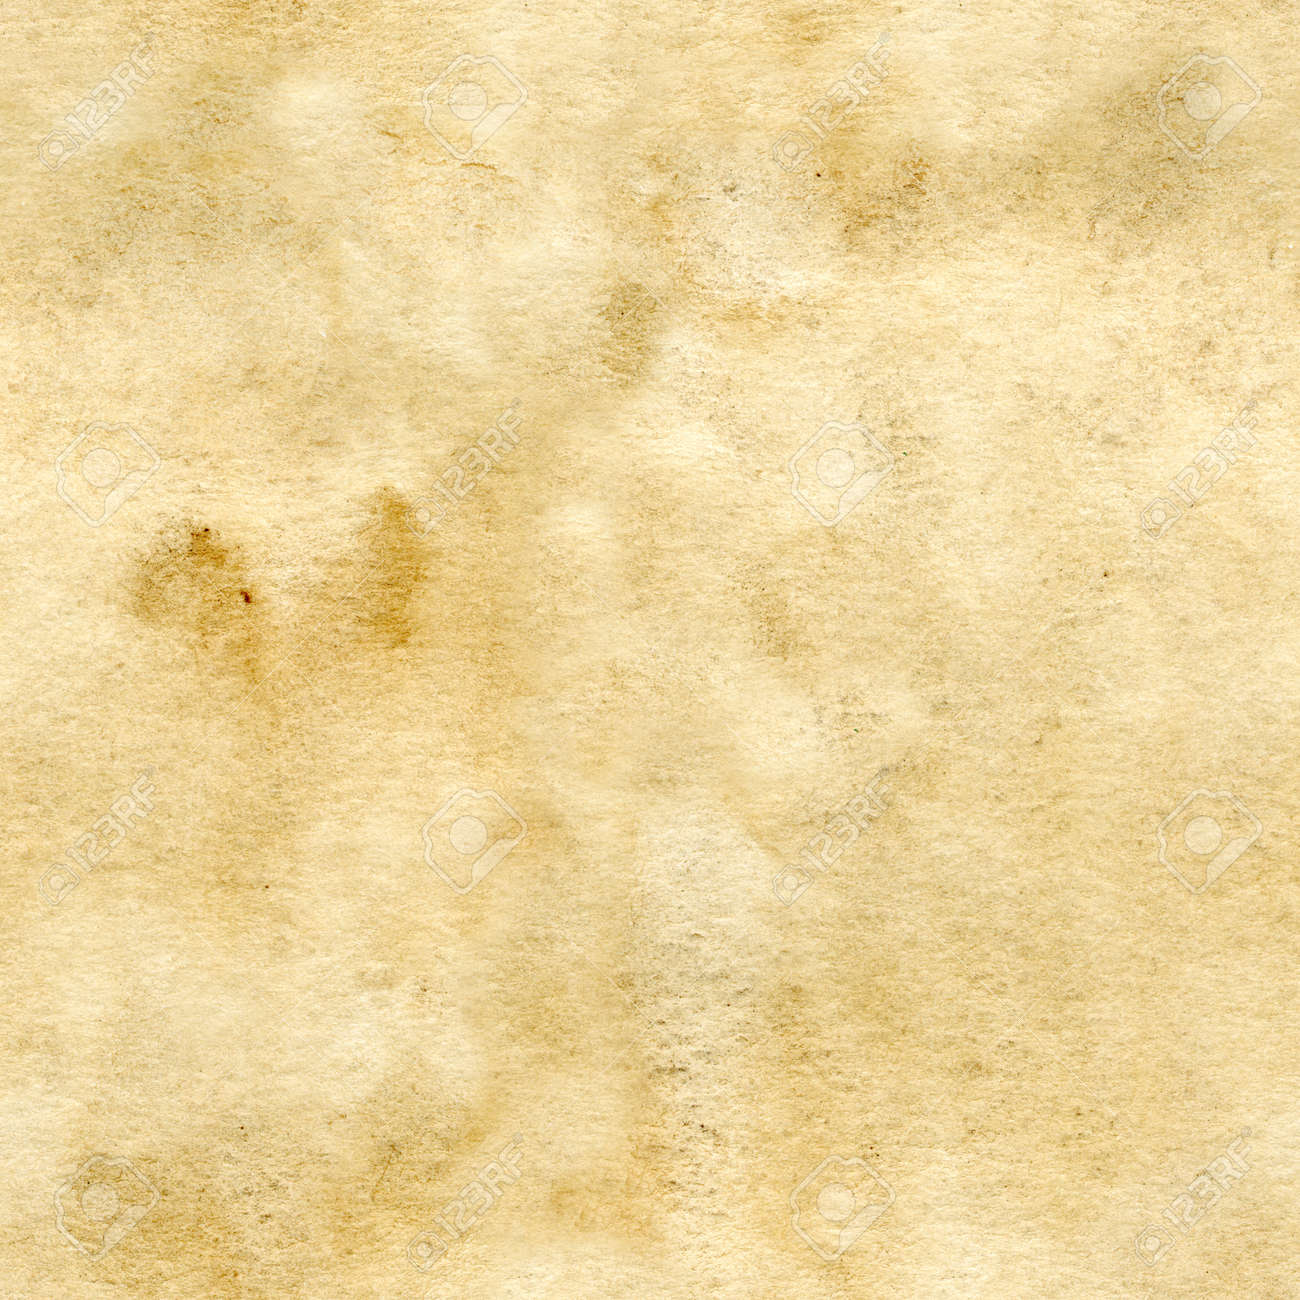 Top Old Paper Texture. Vintage Image. Seamless Old Paper Background  BX76